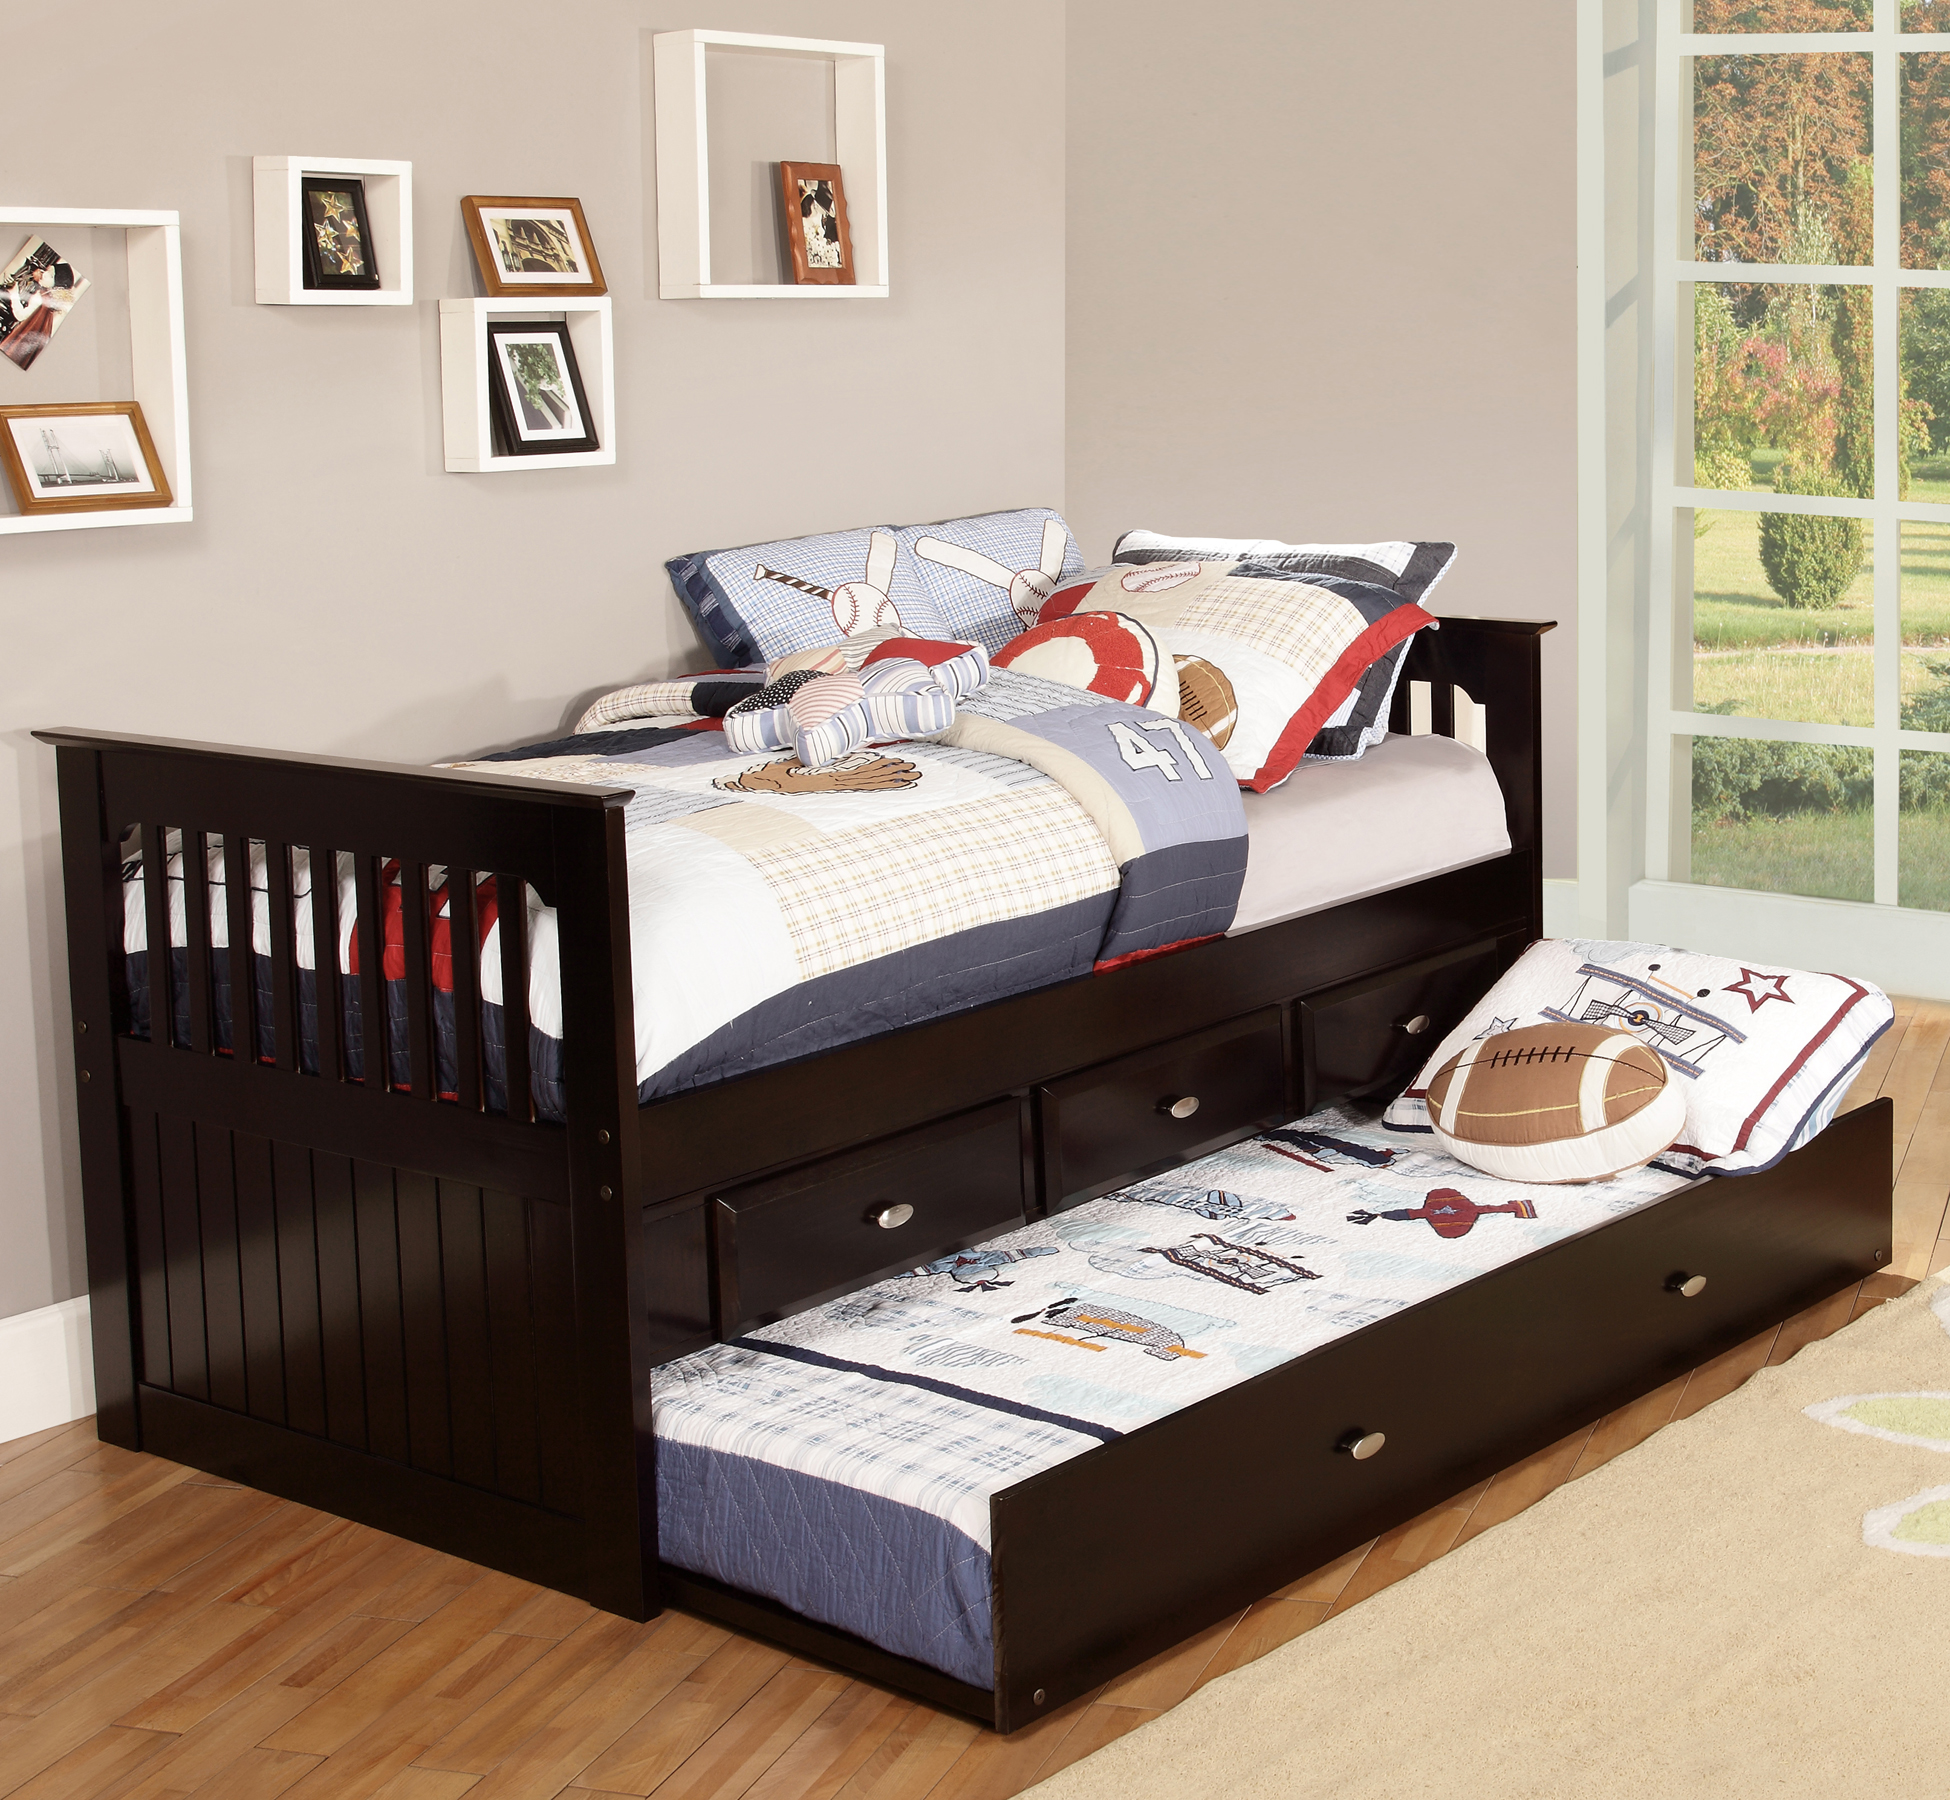 American Furniture Classics Model 2935-TRE, Solid Pine Twin Rake Bed with Trundle and Three Underbed Drawers in Espresso